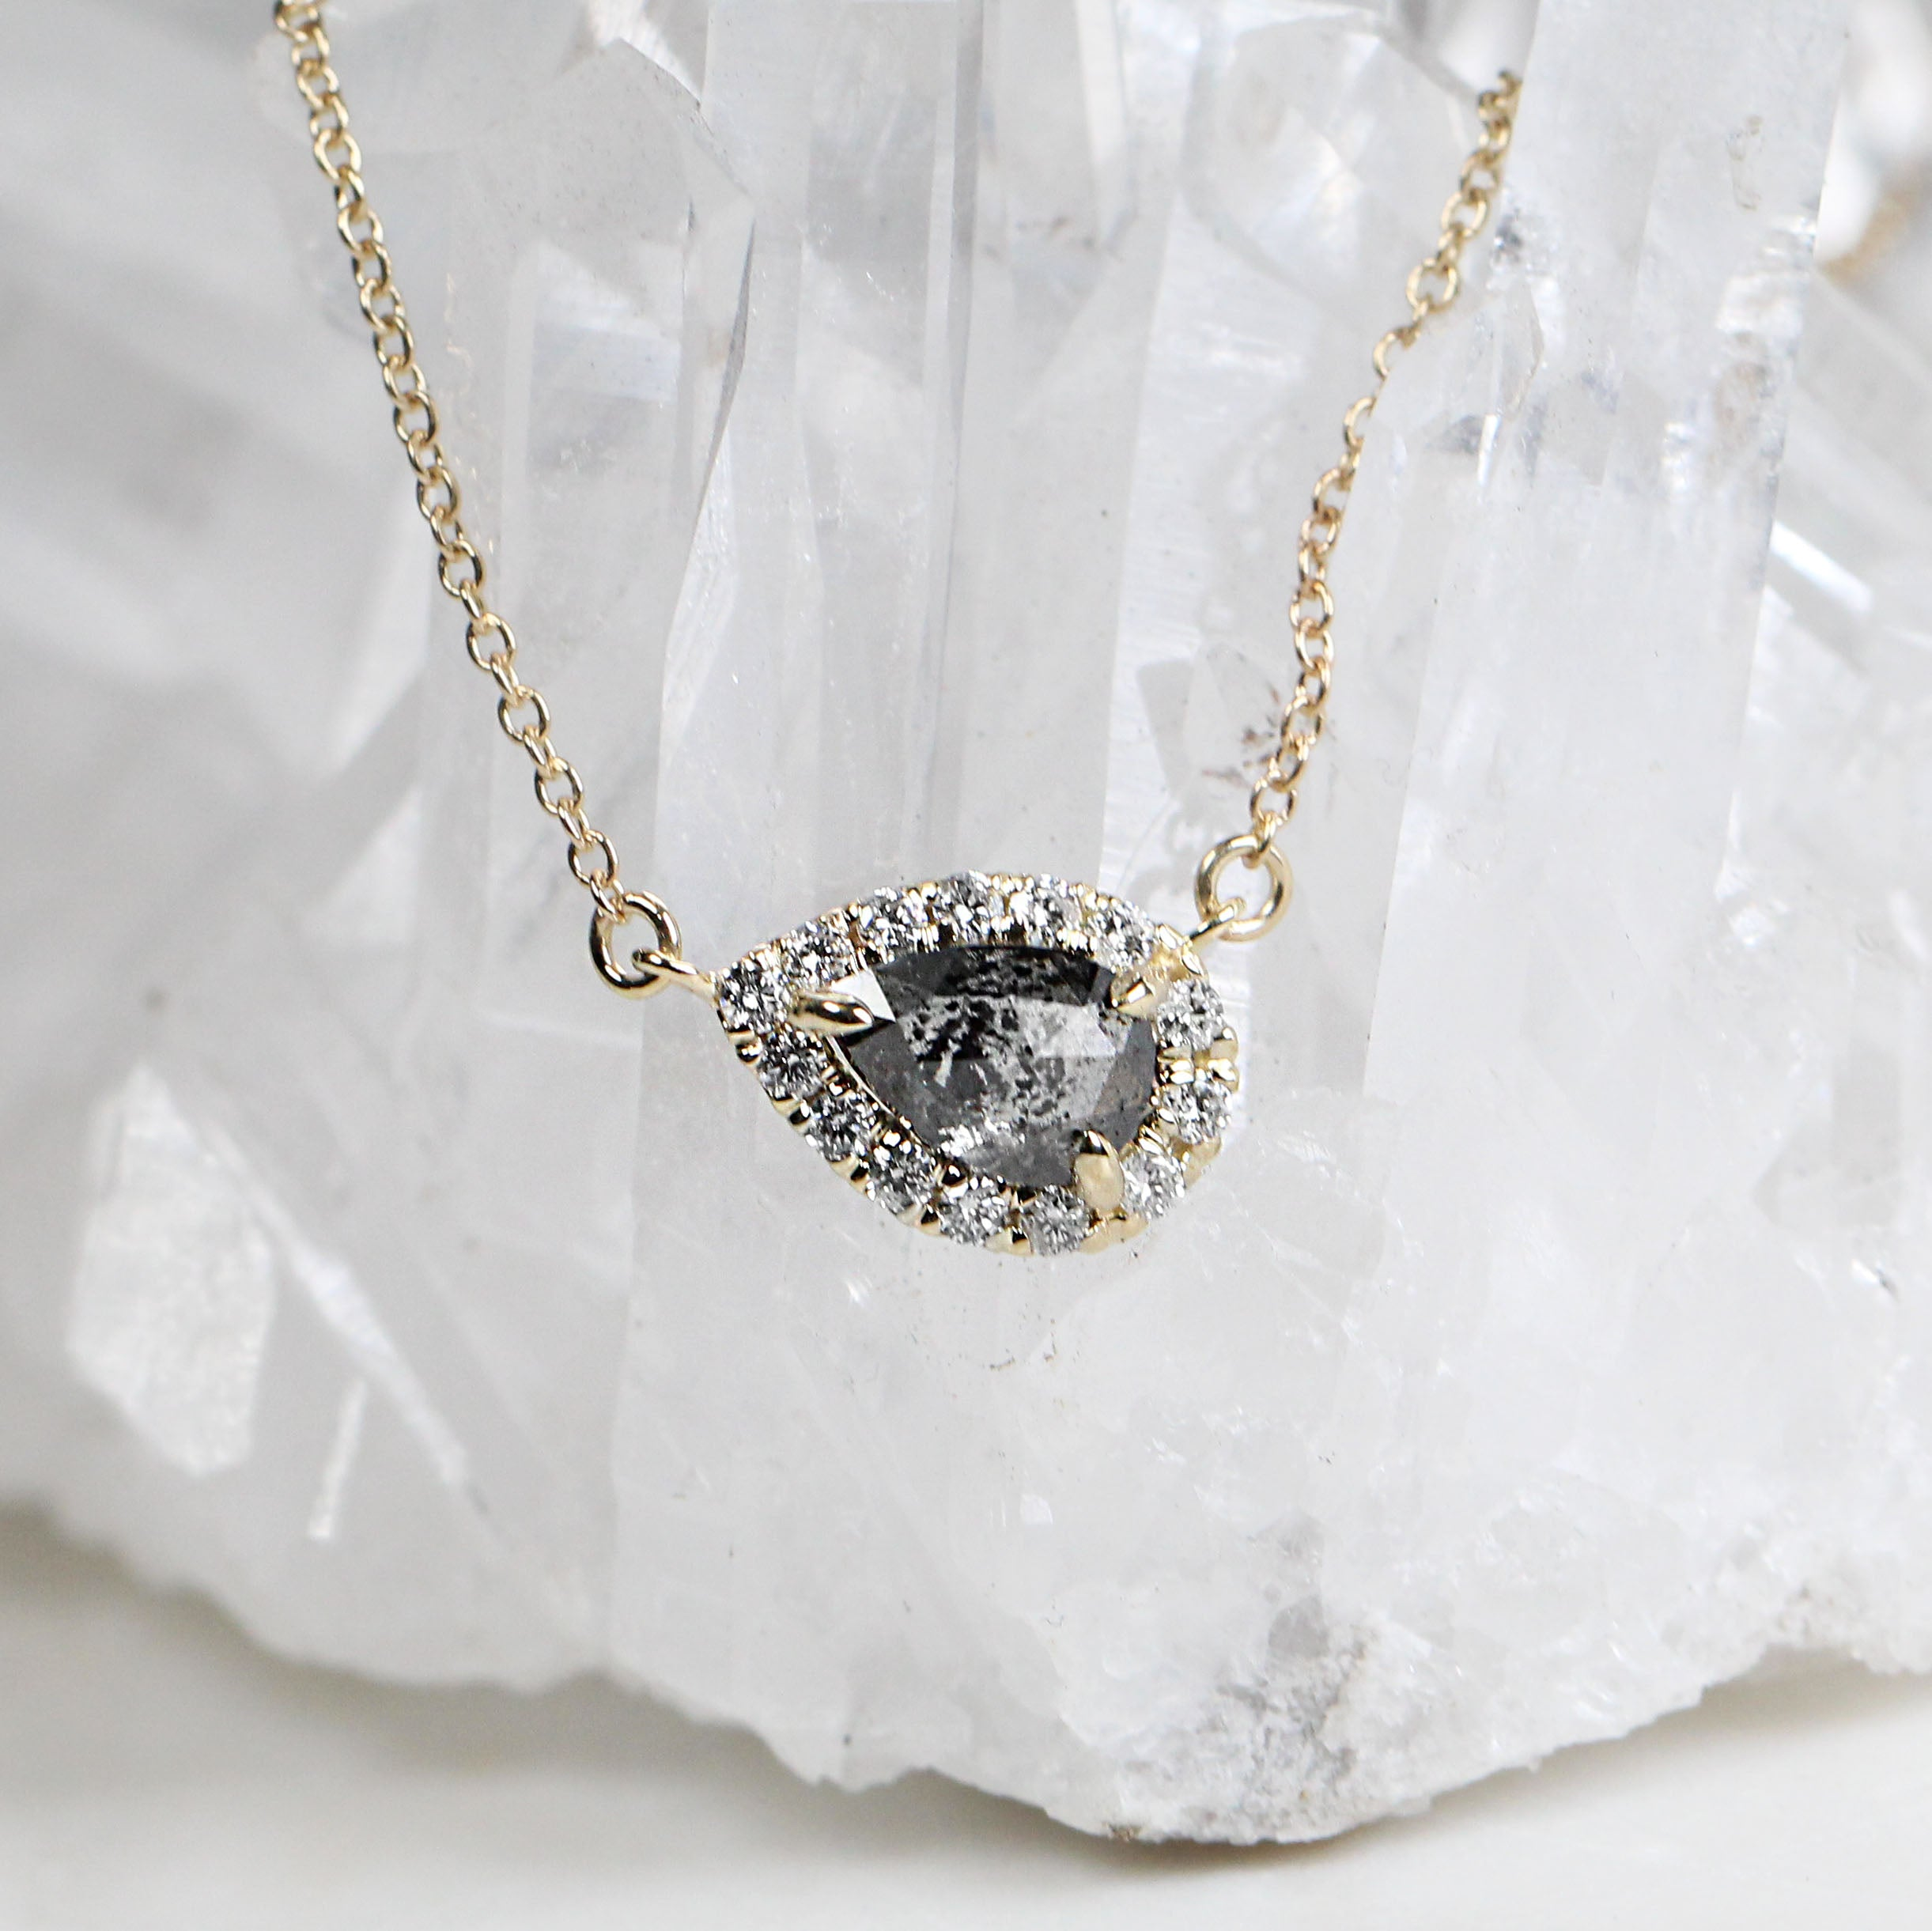 Jeanie Necklace with .87 Carat Pear Celestial Diamond in 14k Yellow Gold - Celestial Diamonds ® by Midwinter Co.